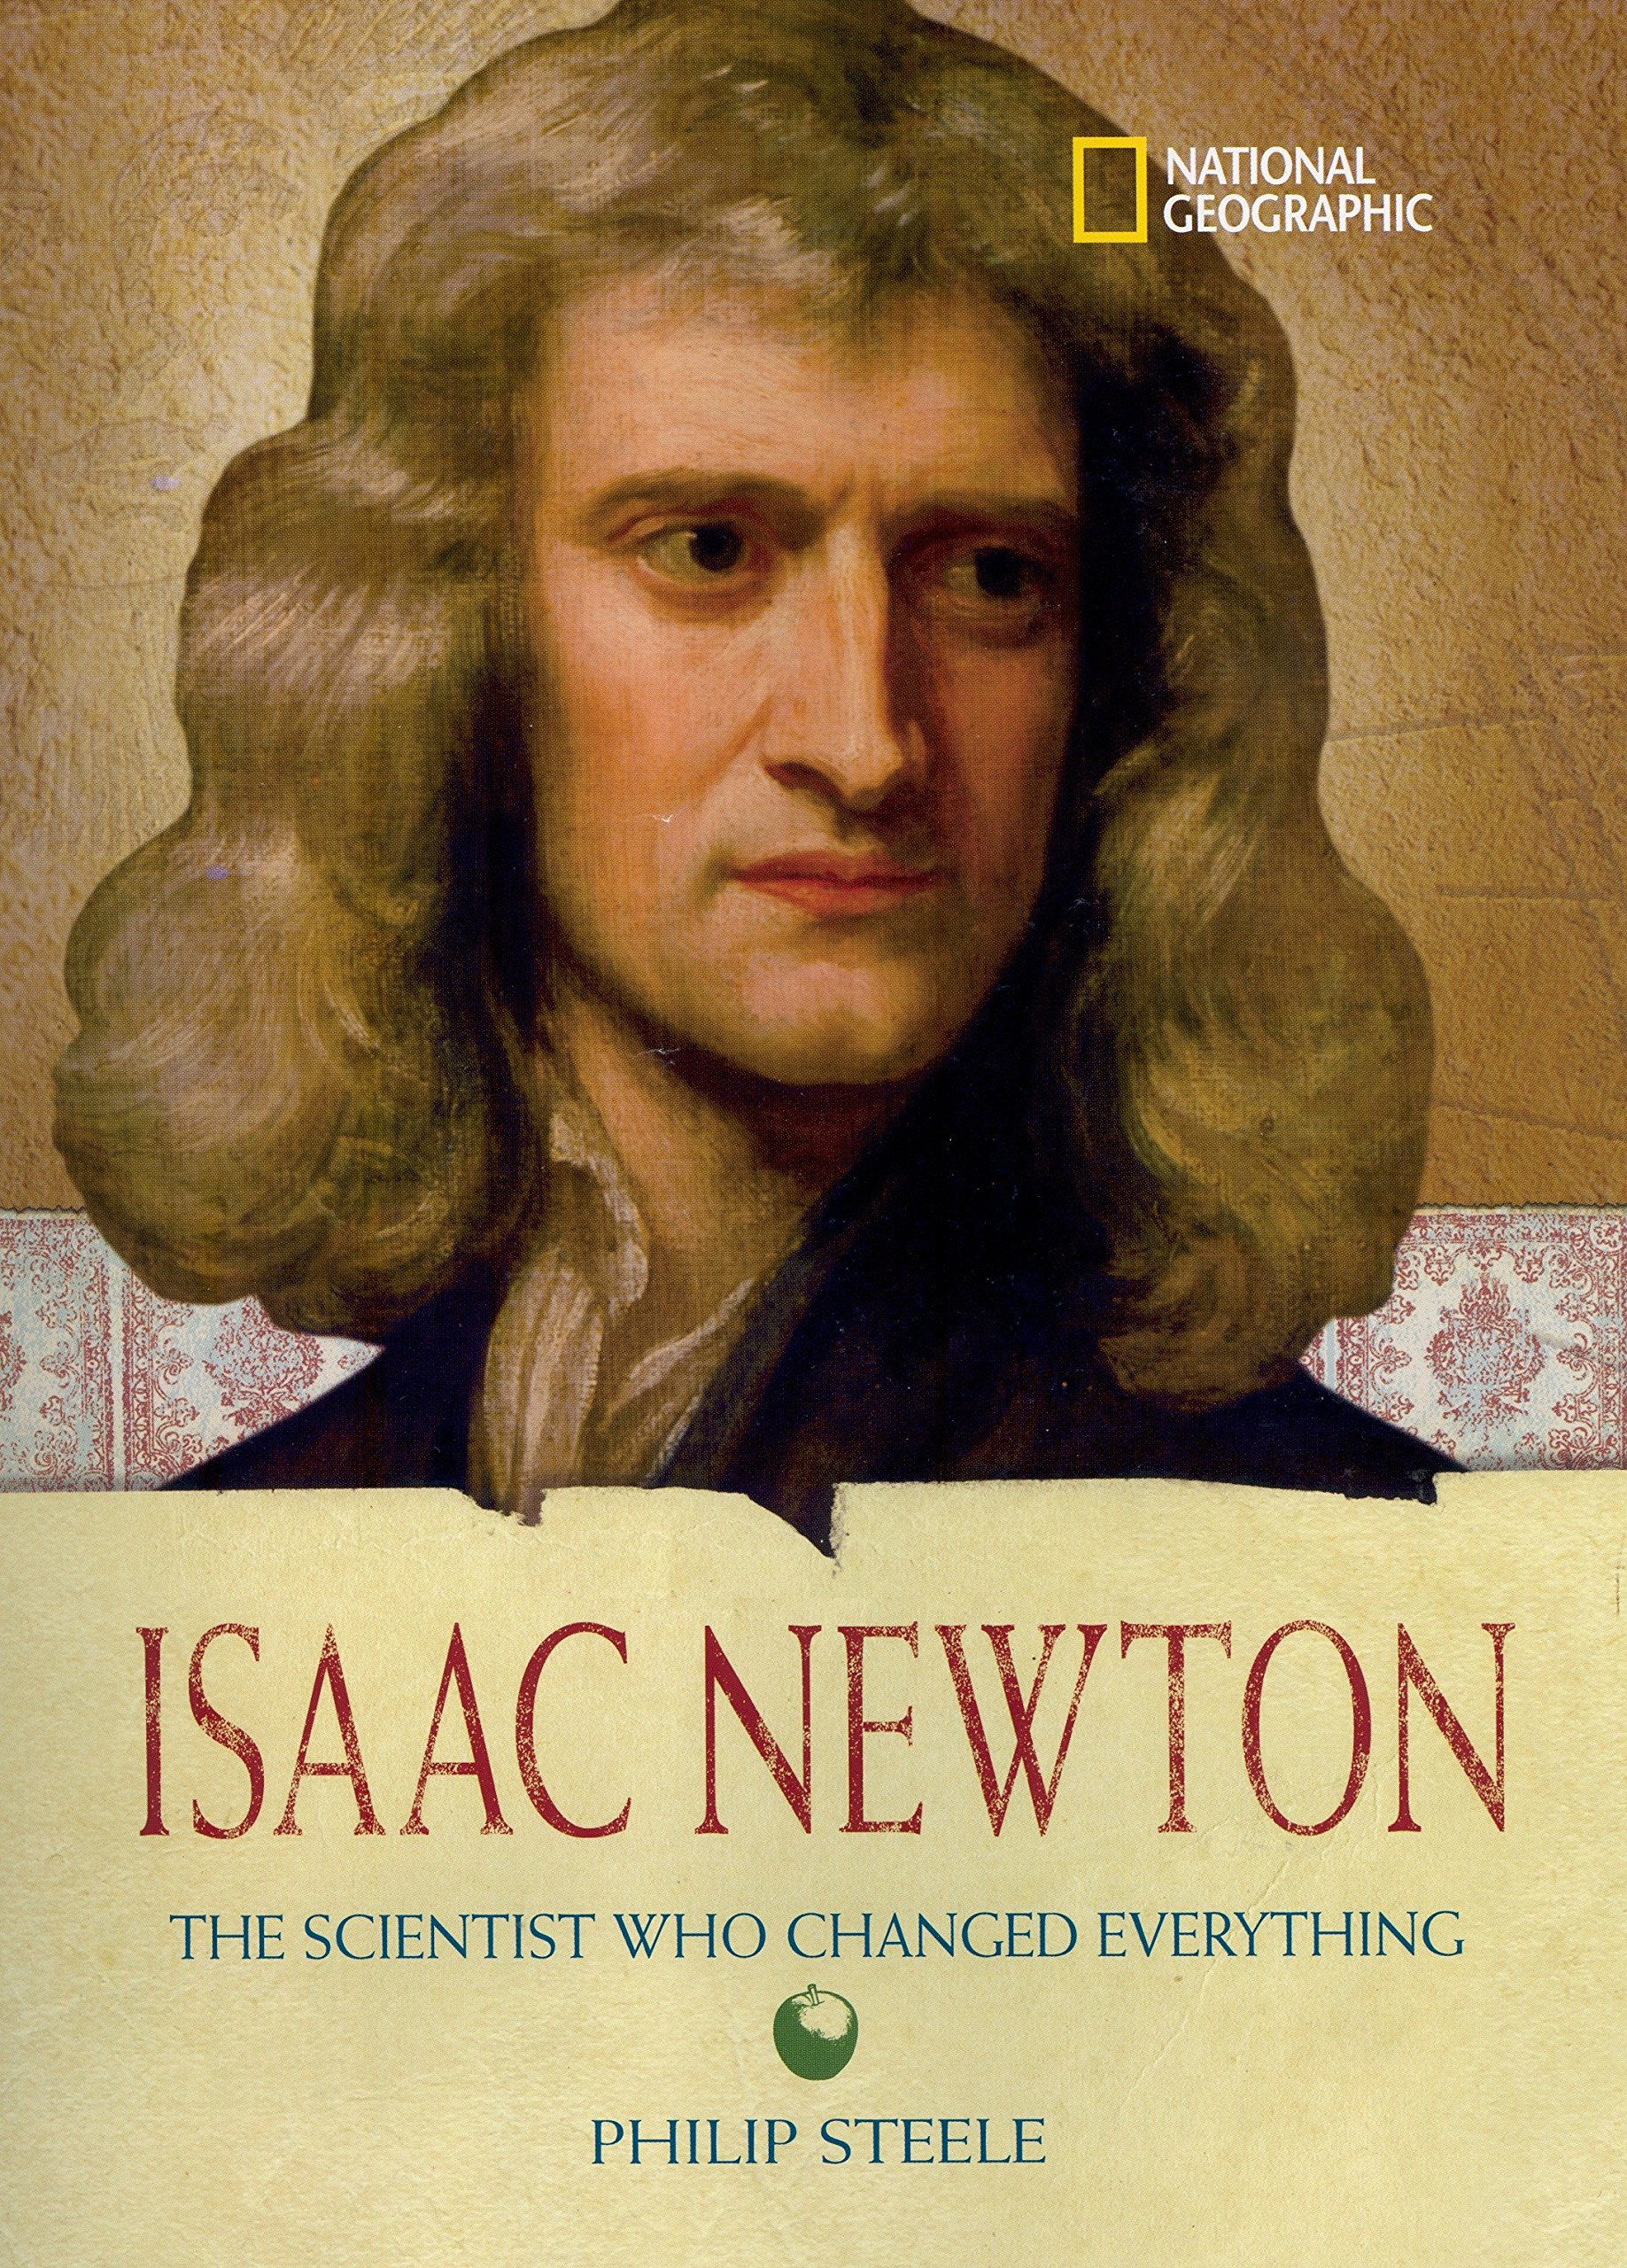 Download World History Biographies: Isaac Newton: The Scientist Who Changed Everything (National Geographic World History Biographies) pdf